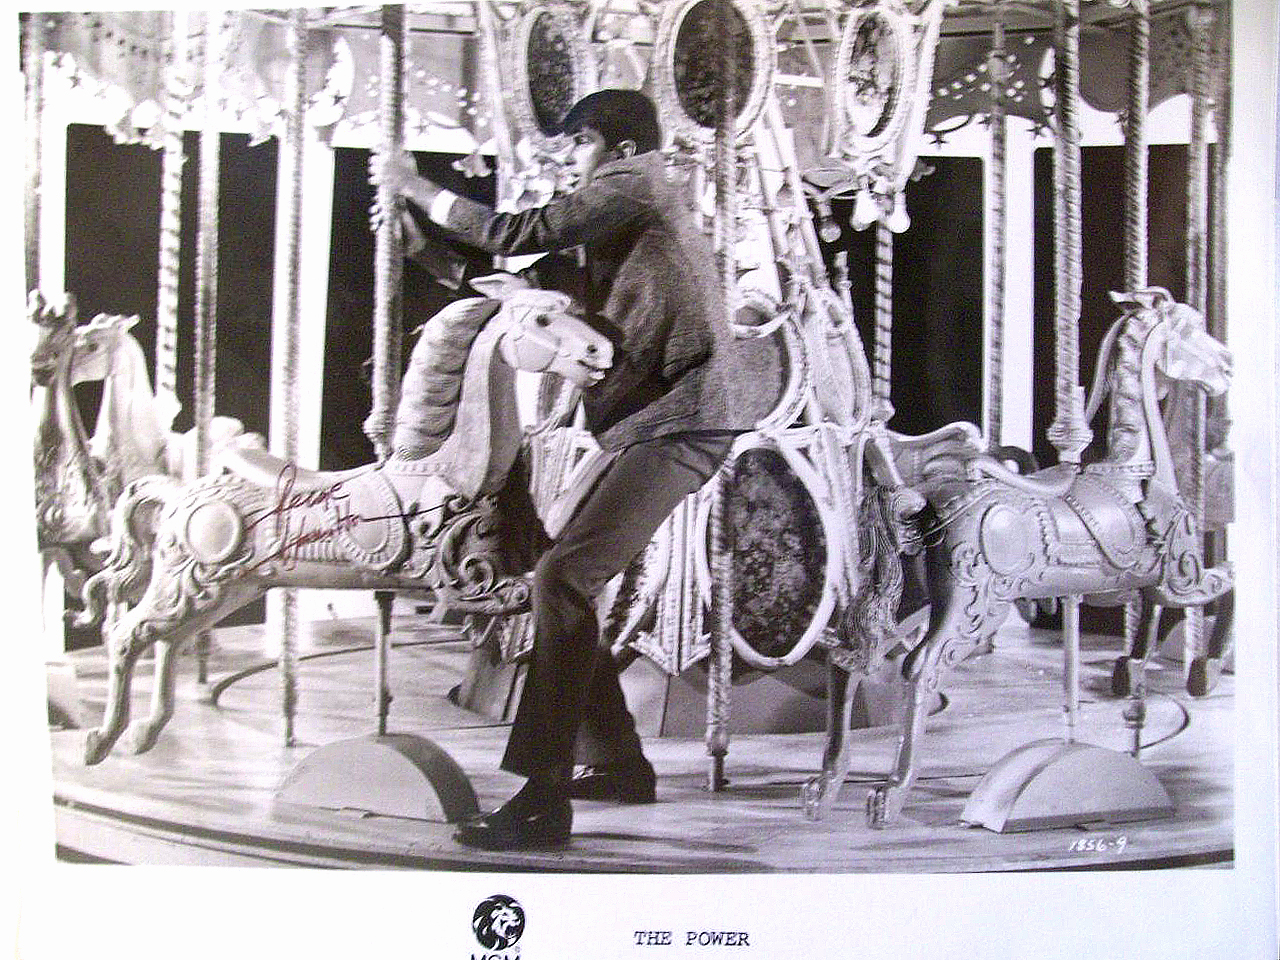 George Hamilton in The Power (1968)